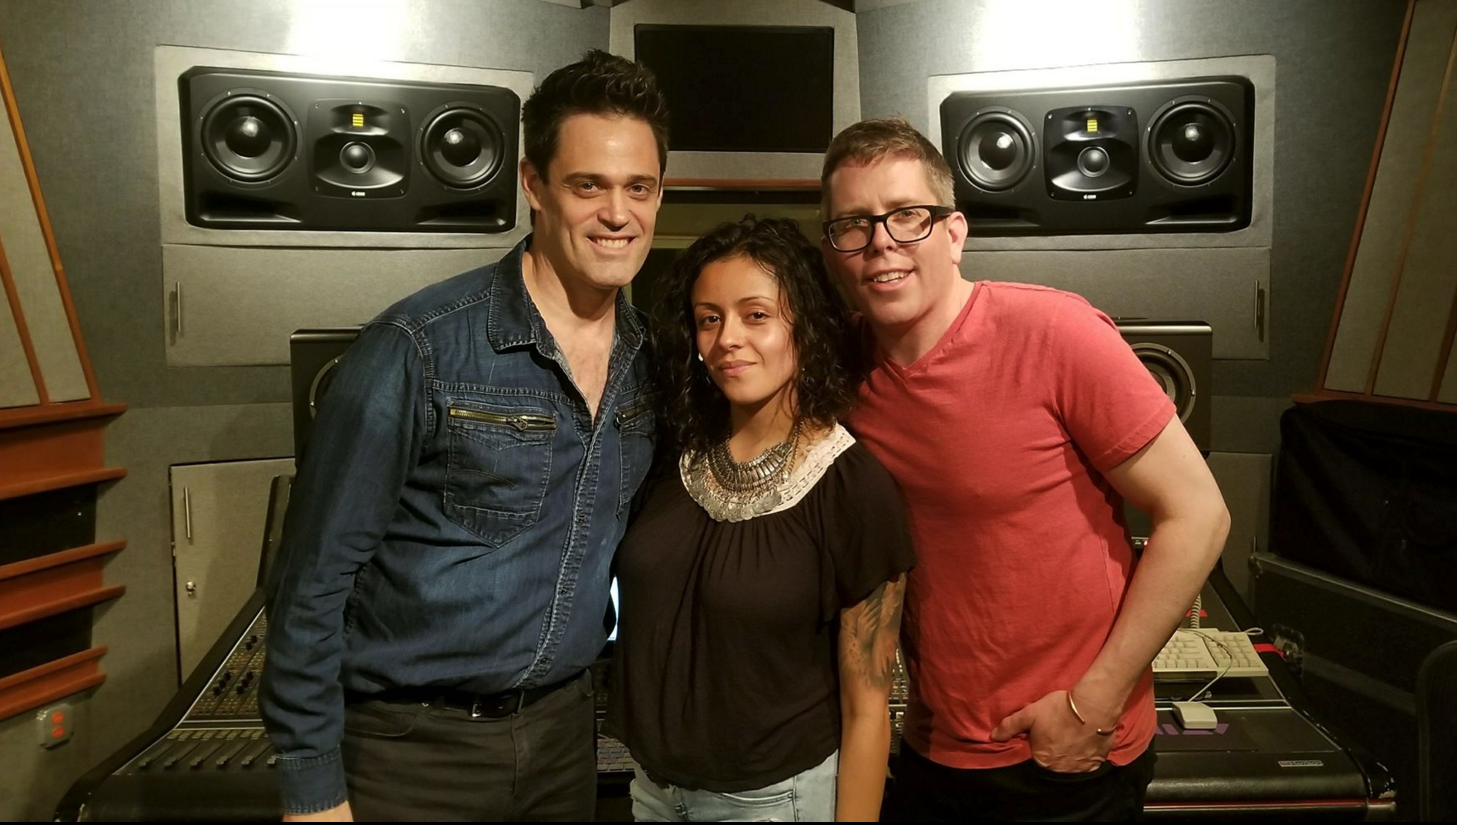 Roman Rojas and Fran Cathcart of Eastsidepunks with Isabela Raygoza.